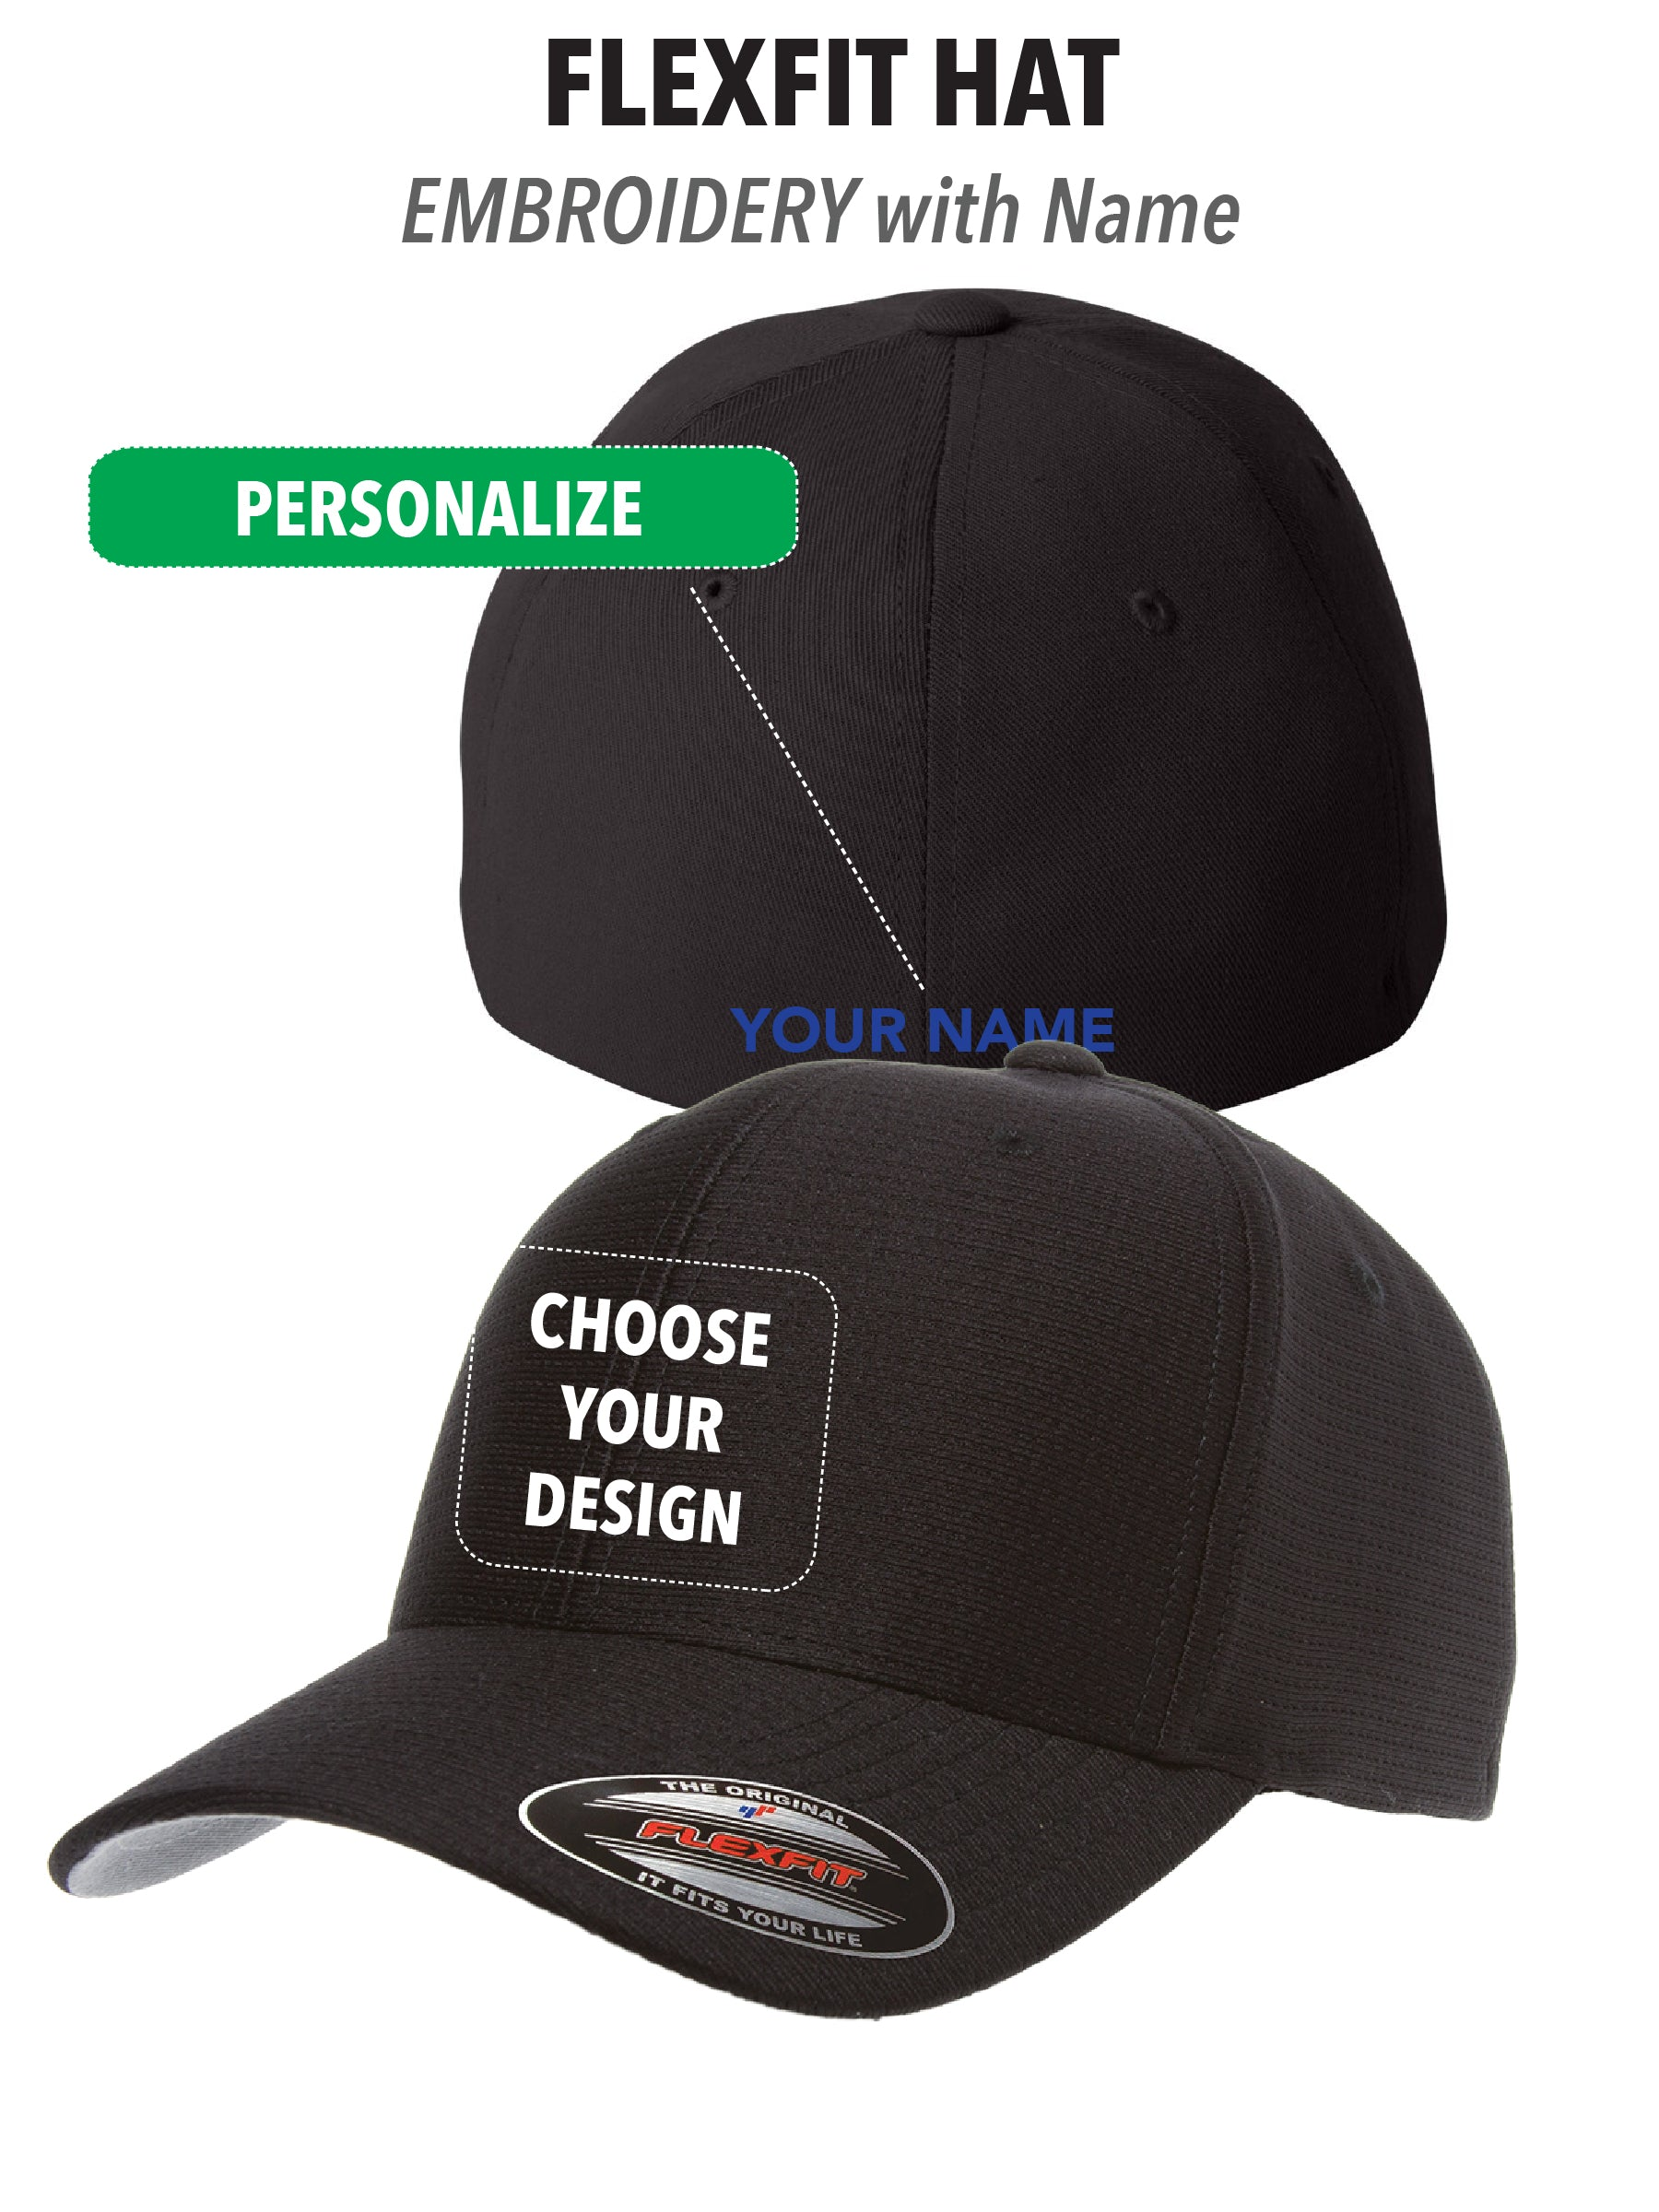 competitive price 04341 72097 Atascadero Police - FlexFit Hat - PERSONALIZE